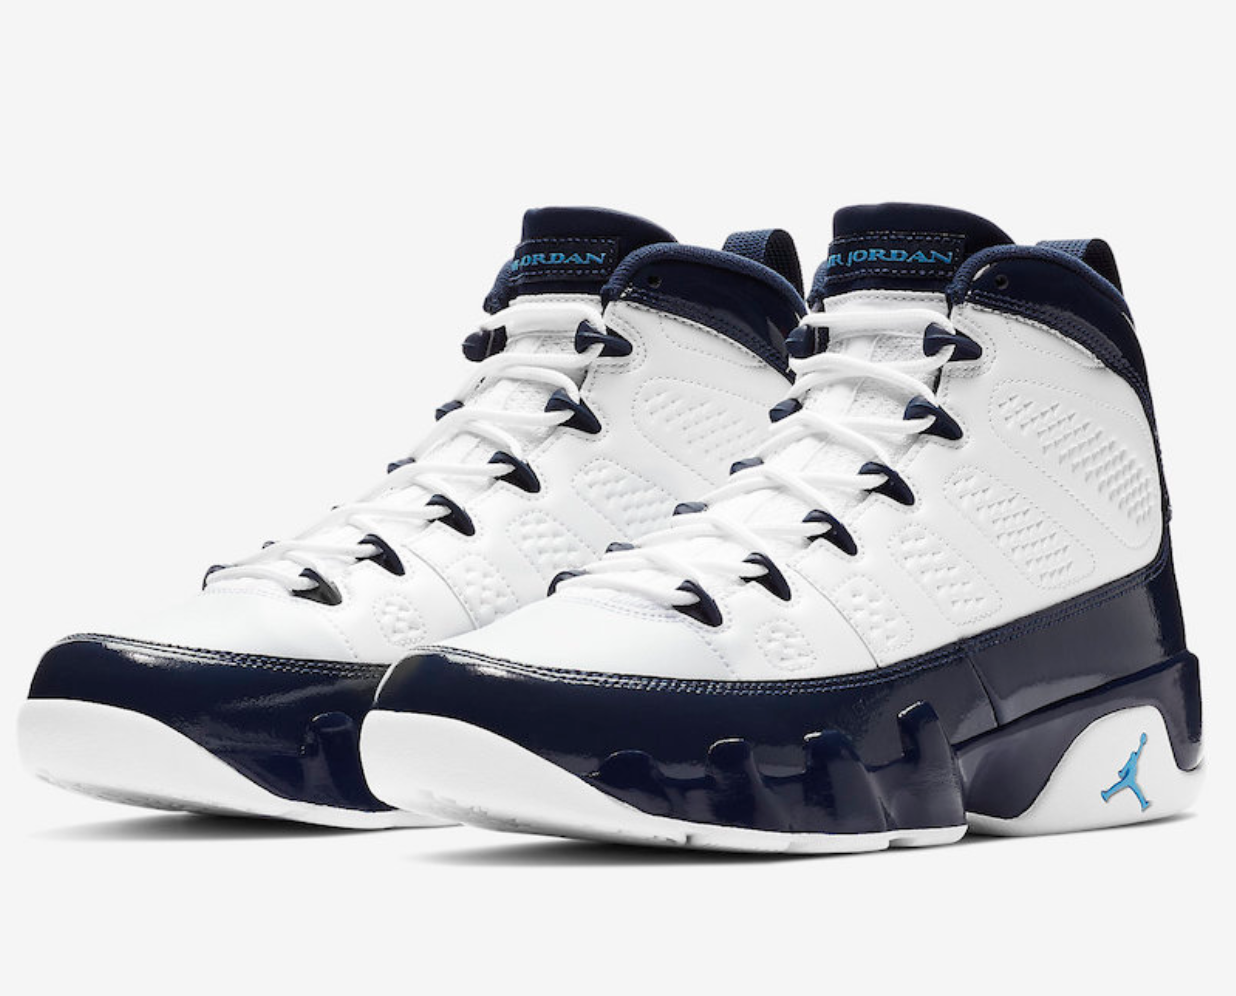 6626f93a5d1e Our shoe recognition app Oculy is now also able to identify the new Air  Jordan 9